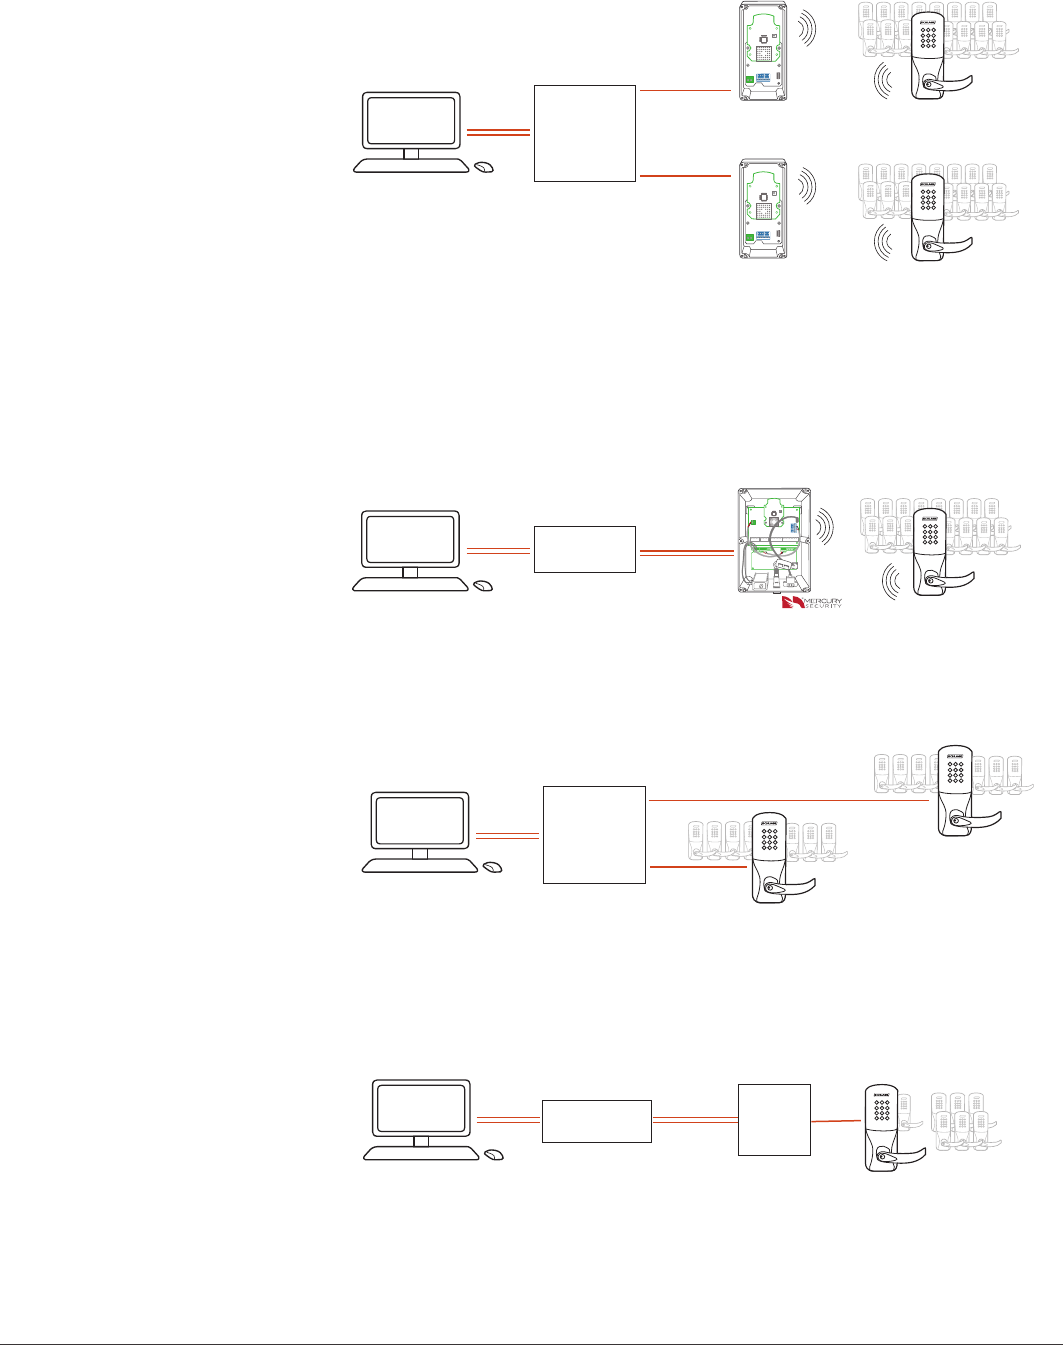 Schlage Electronics Solution Sheet Lenel Ad 300 400 105080 Wireless Wiring Diagrams For Additional Information Contact 18006316046 Or Lenelcom